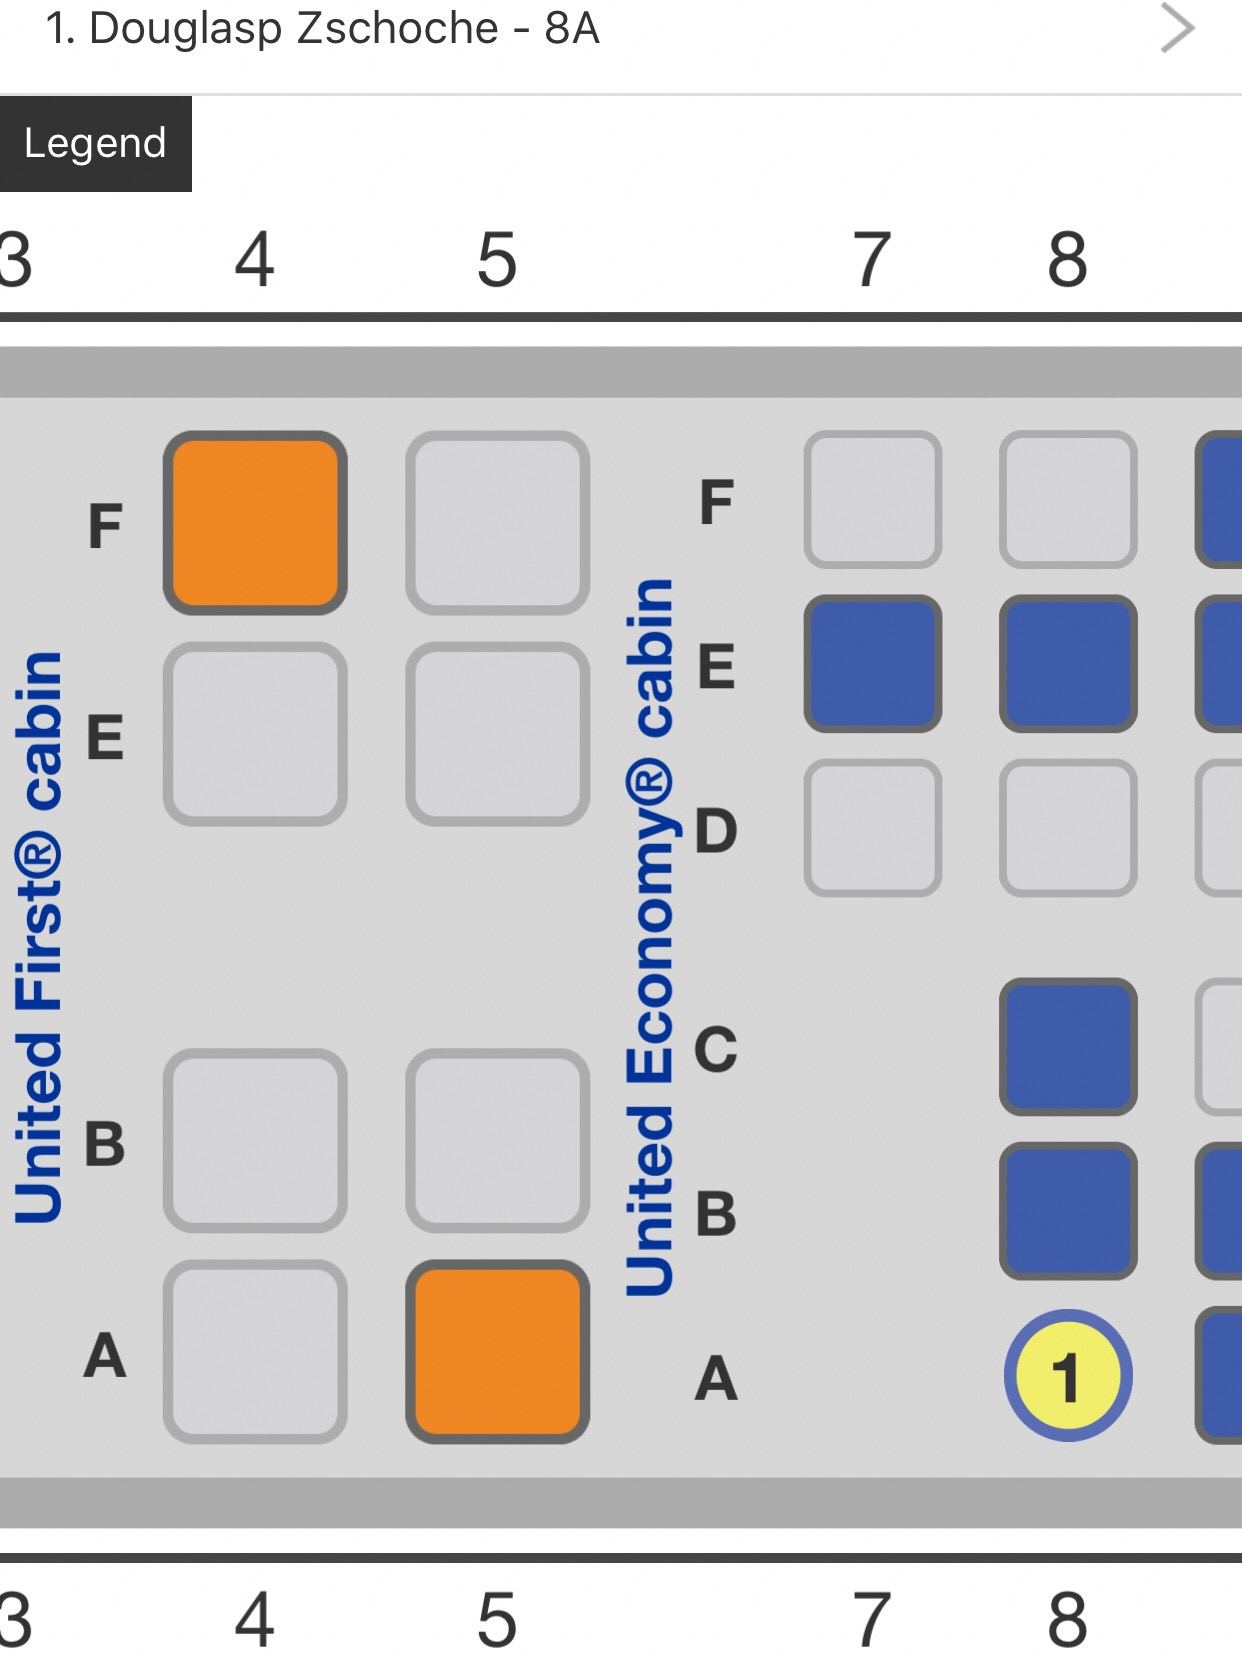 United's App makes it easy to select your seat. Seats in both United First and Economy Plus were available for purchase.